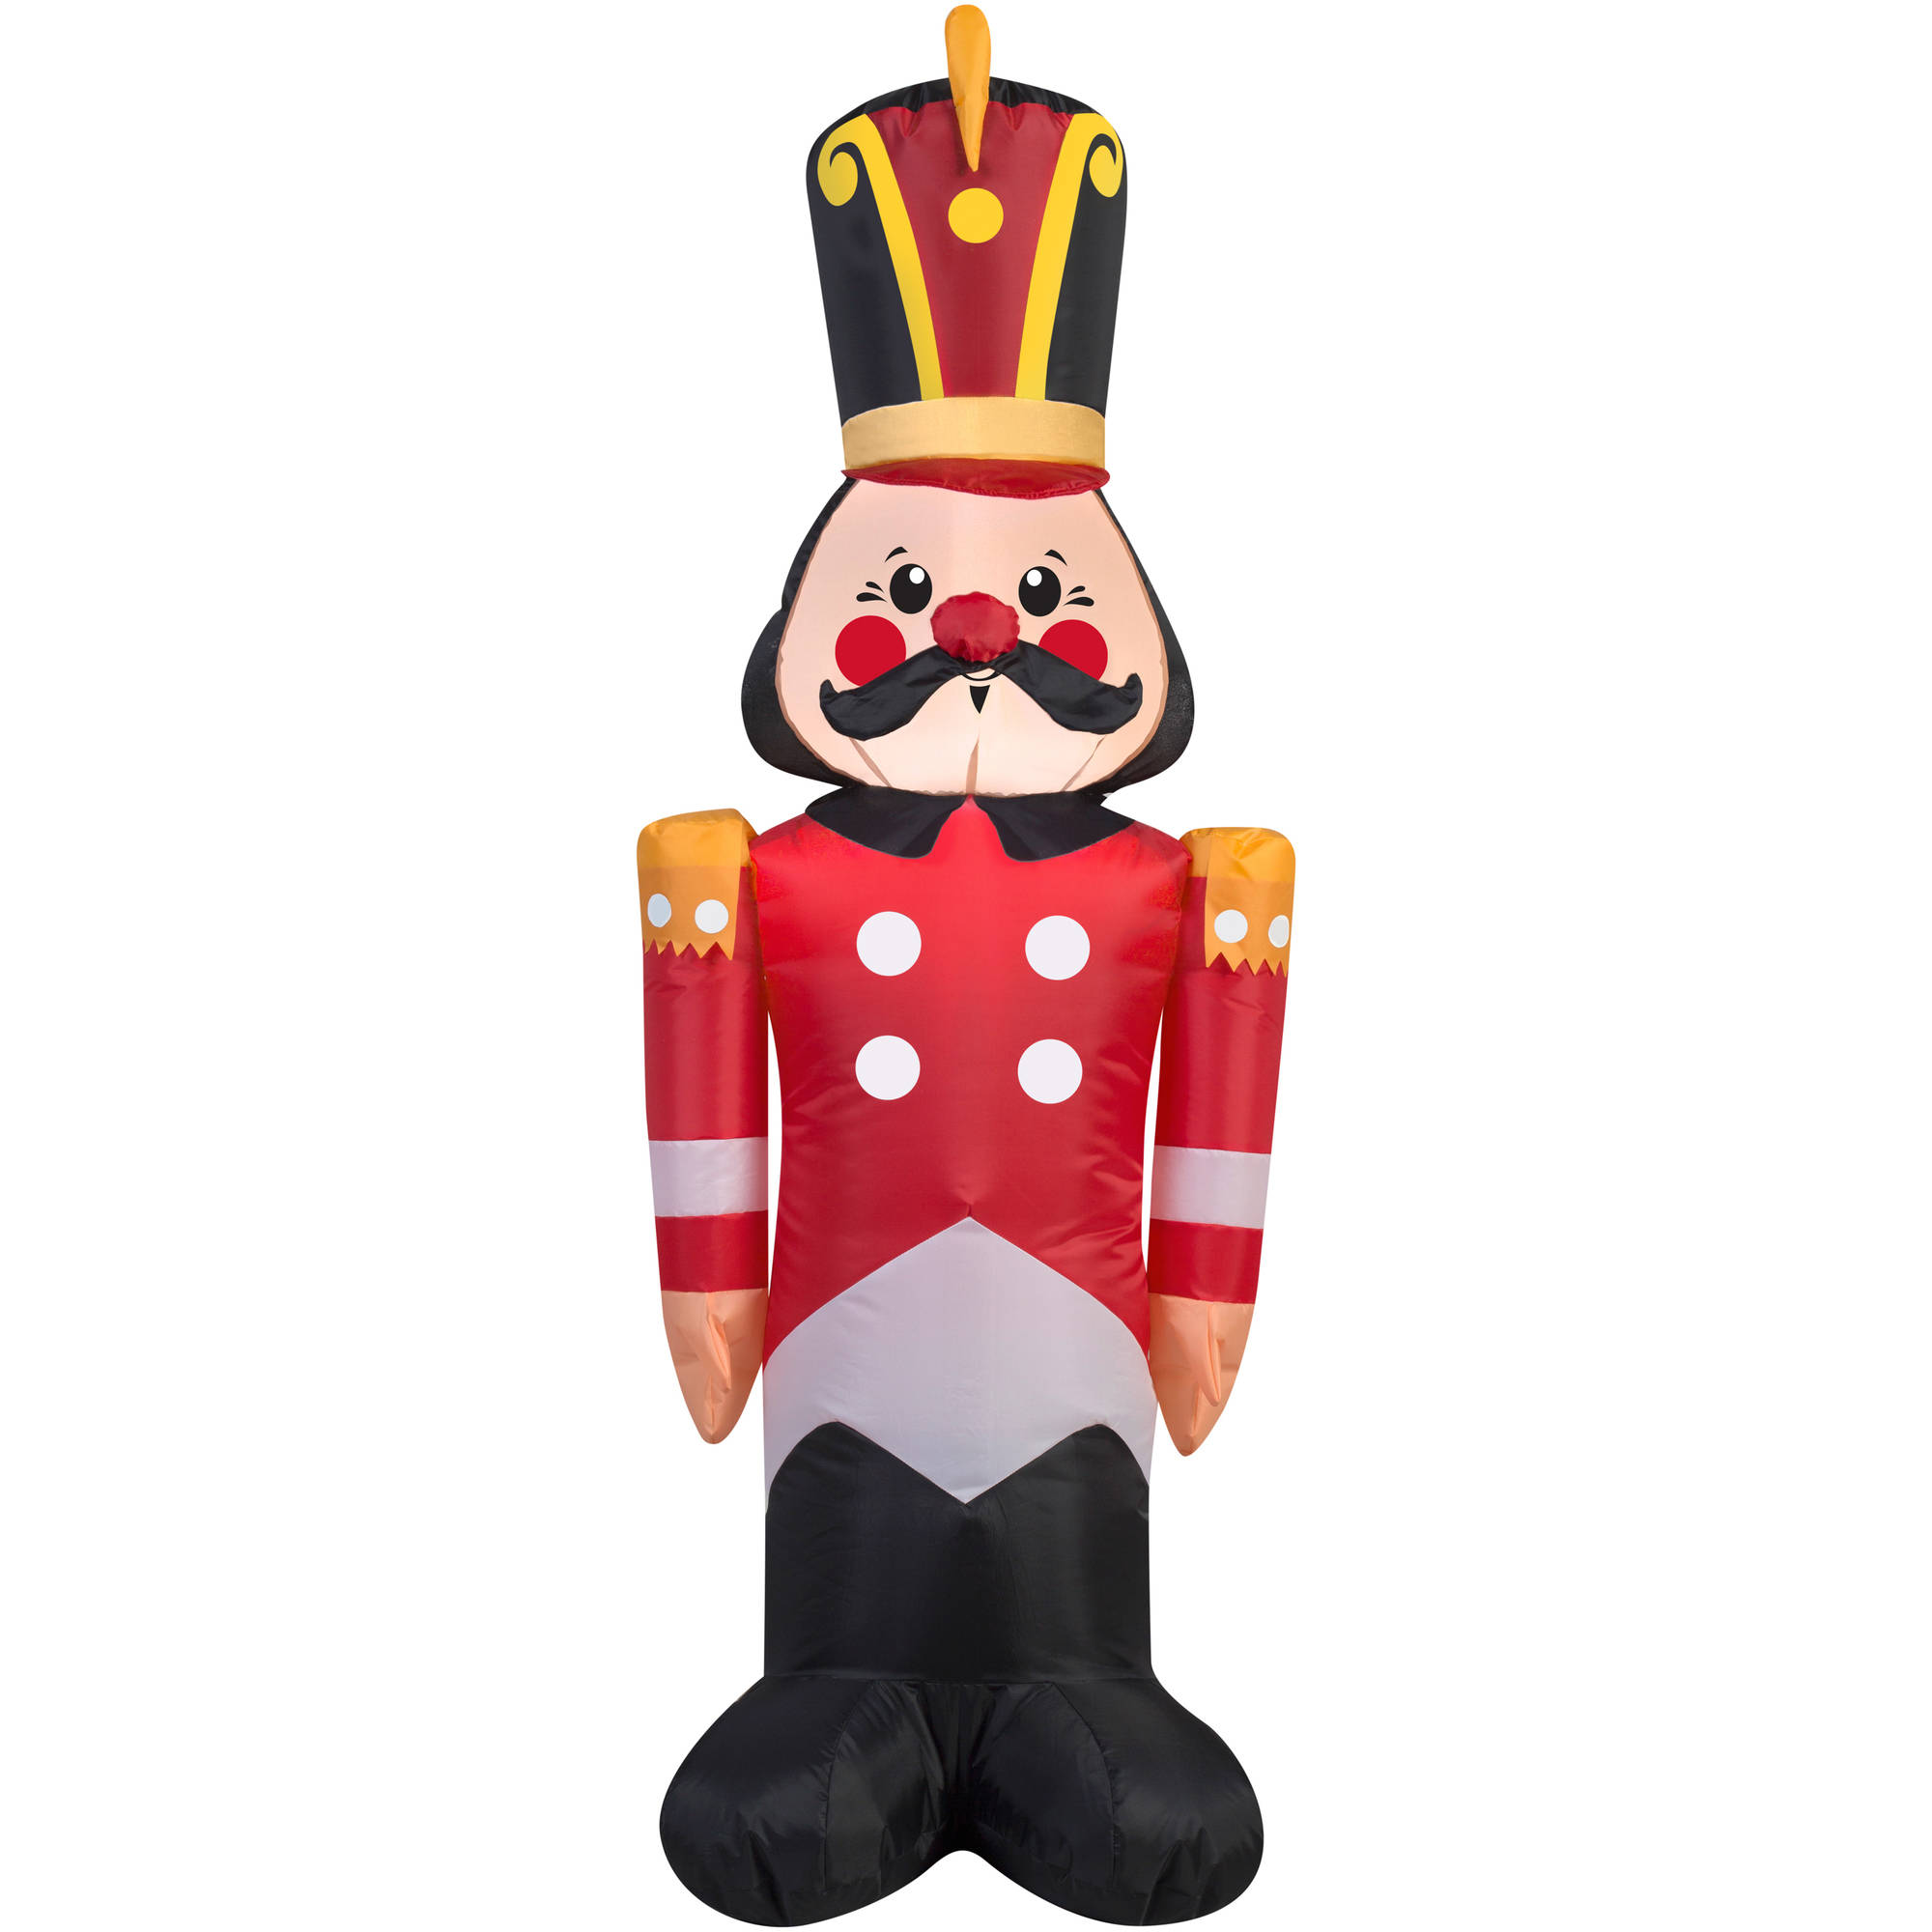 Gemmy Airblown Christmas Inflatables Toy Soldier, 4' - Walmart.com